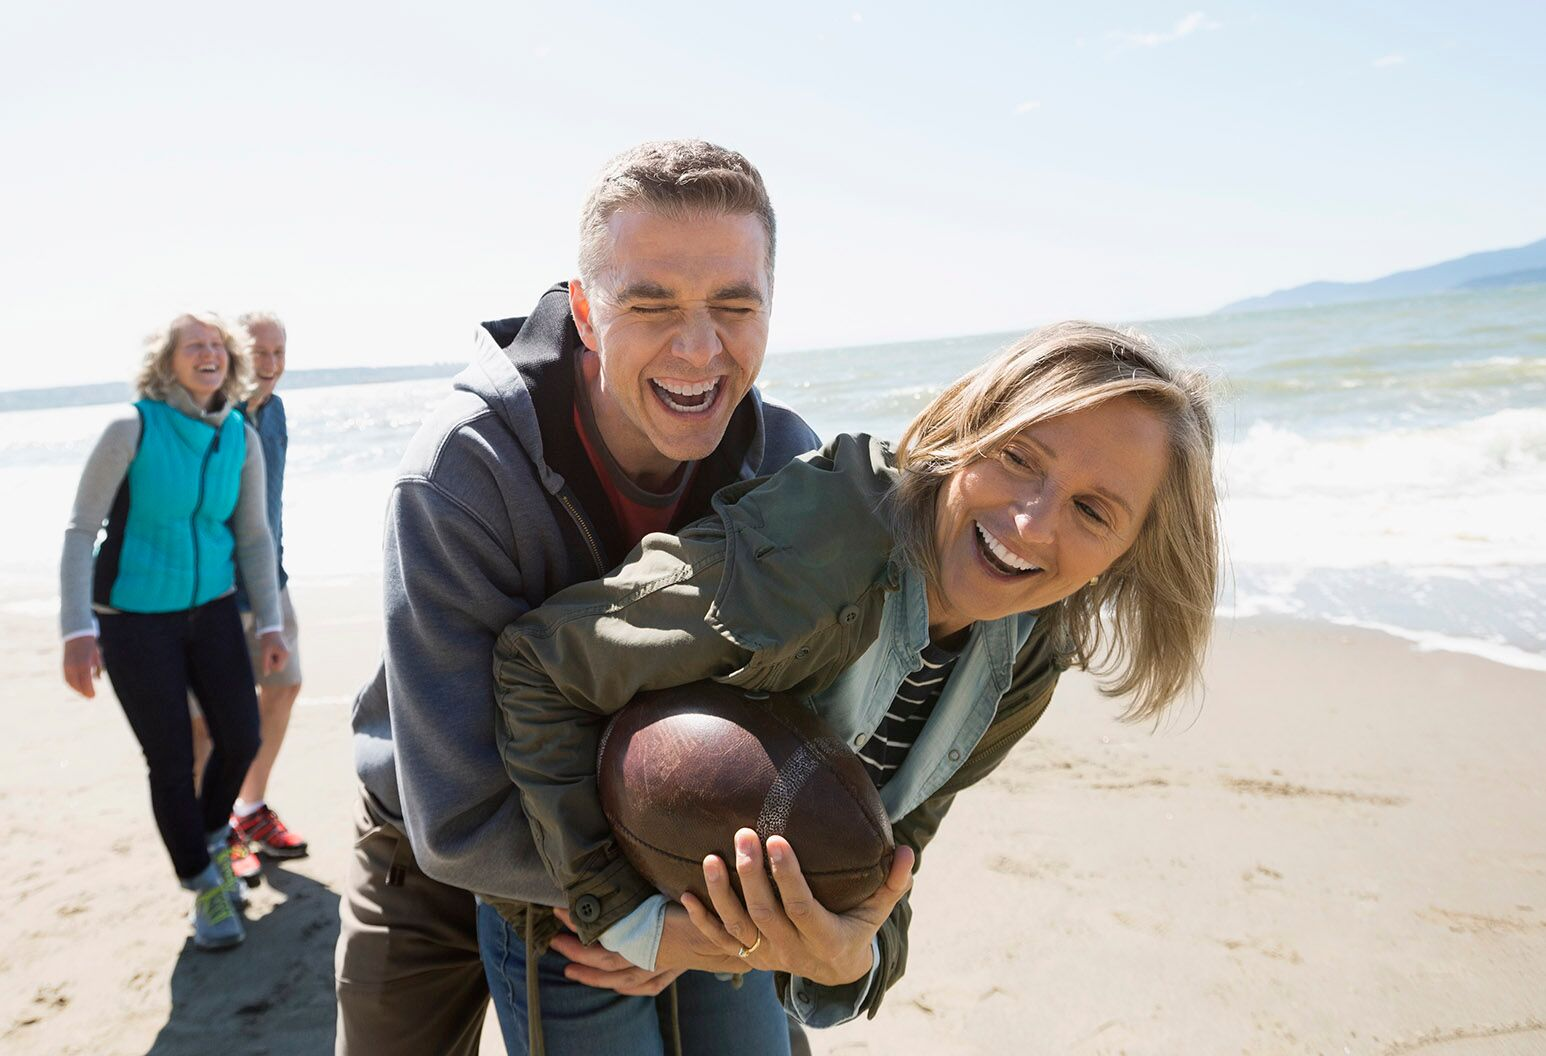 A middle aged couple pictured on a beach, wrestling over a football.